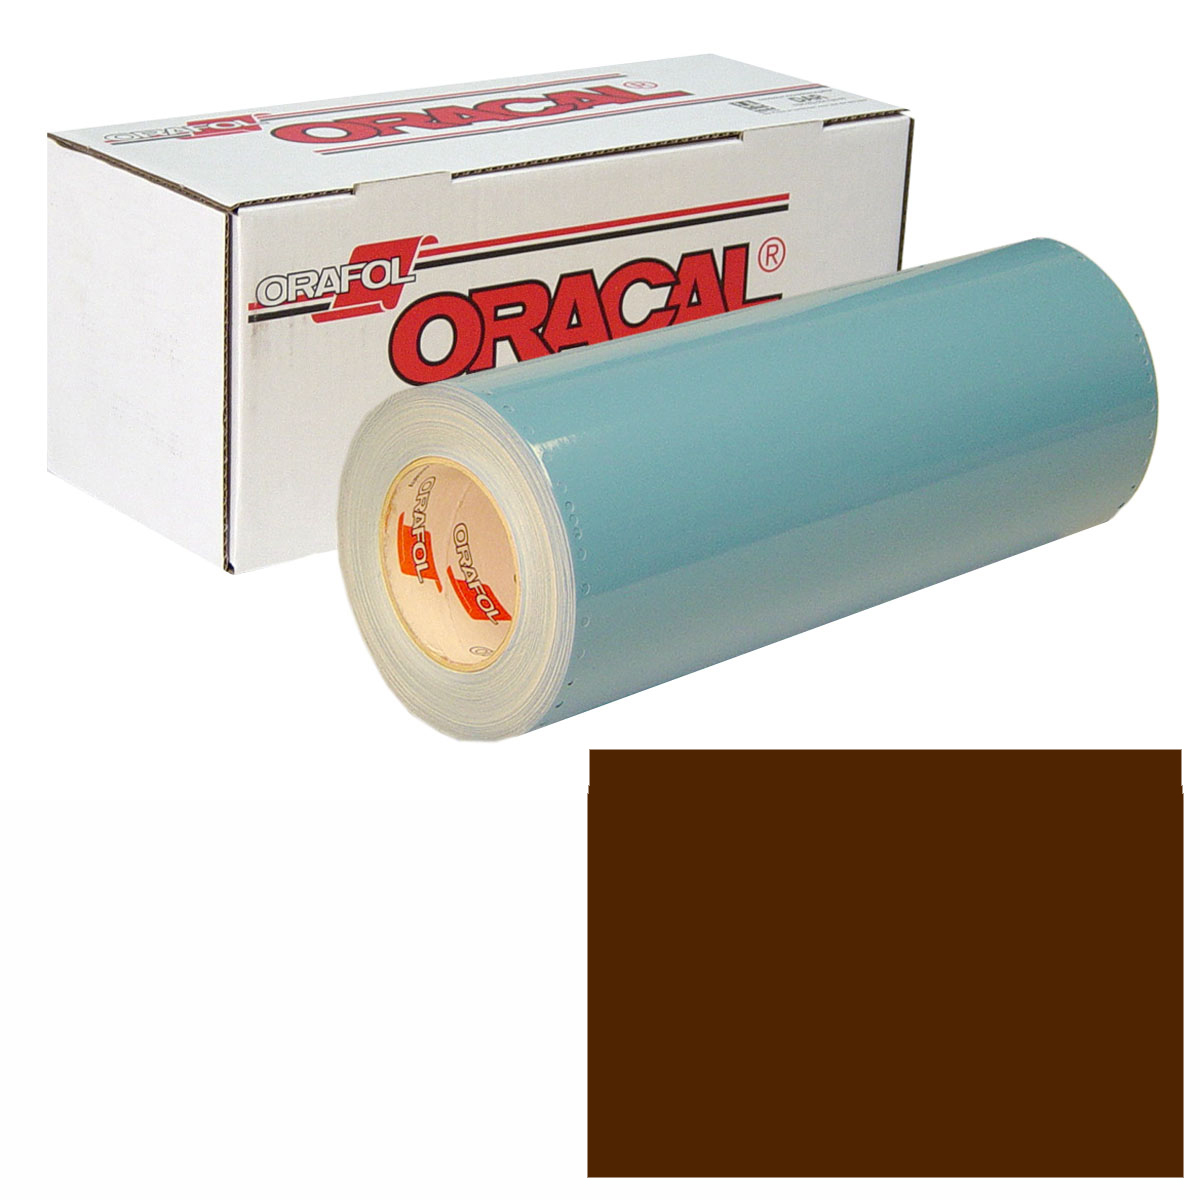 ORACAL 751 30In X 10Yd 080 Brown